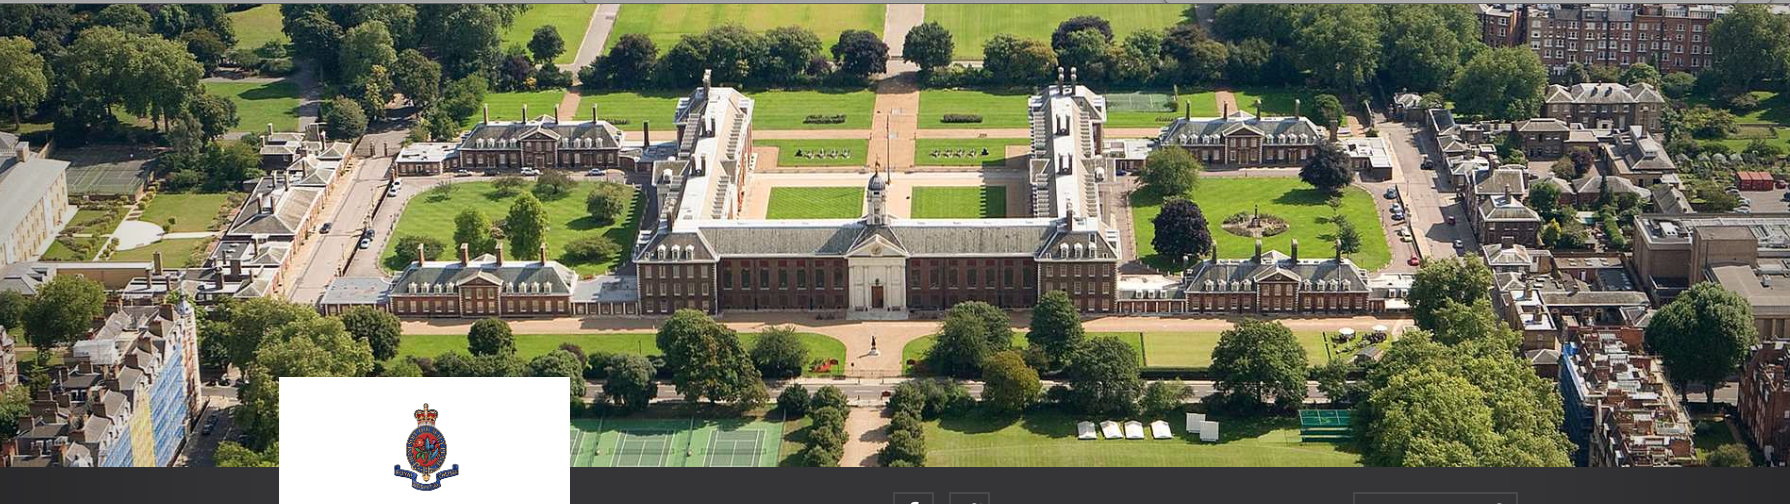 Aerial view of the Royal Hospital. Image courtesy of the Royal Hospital, Chelsea.